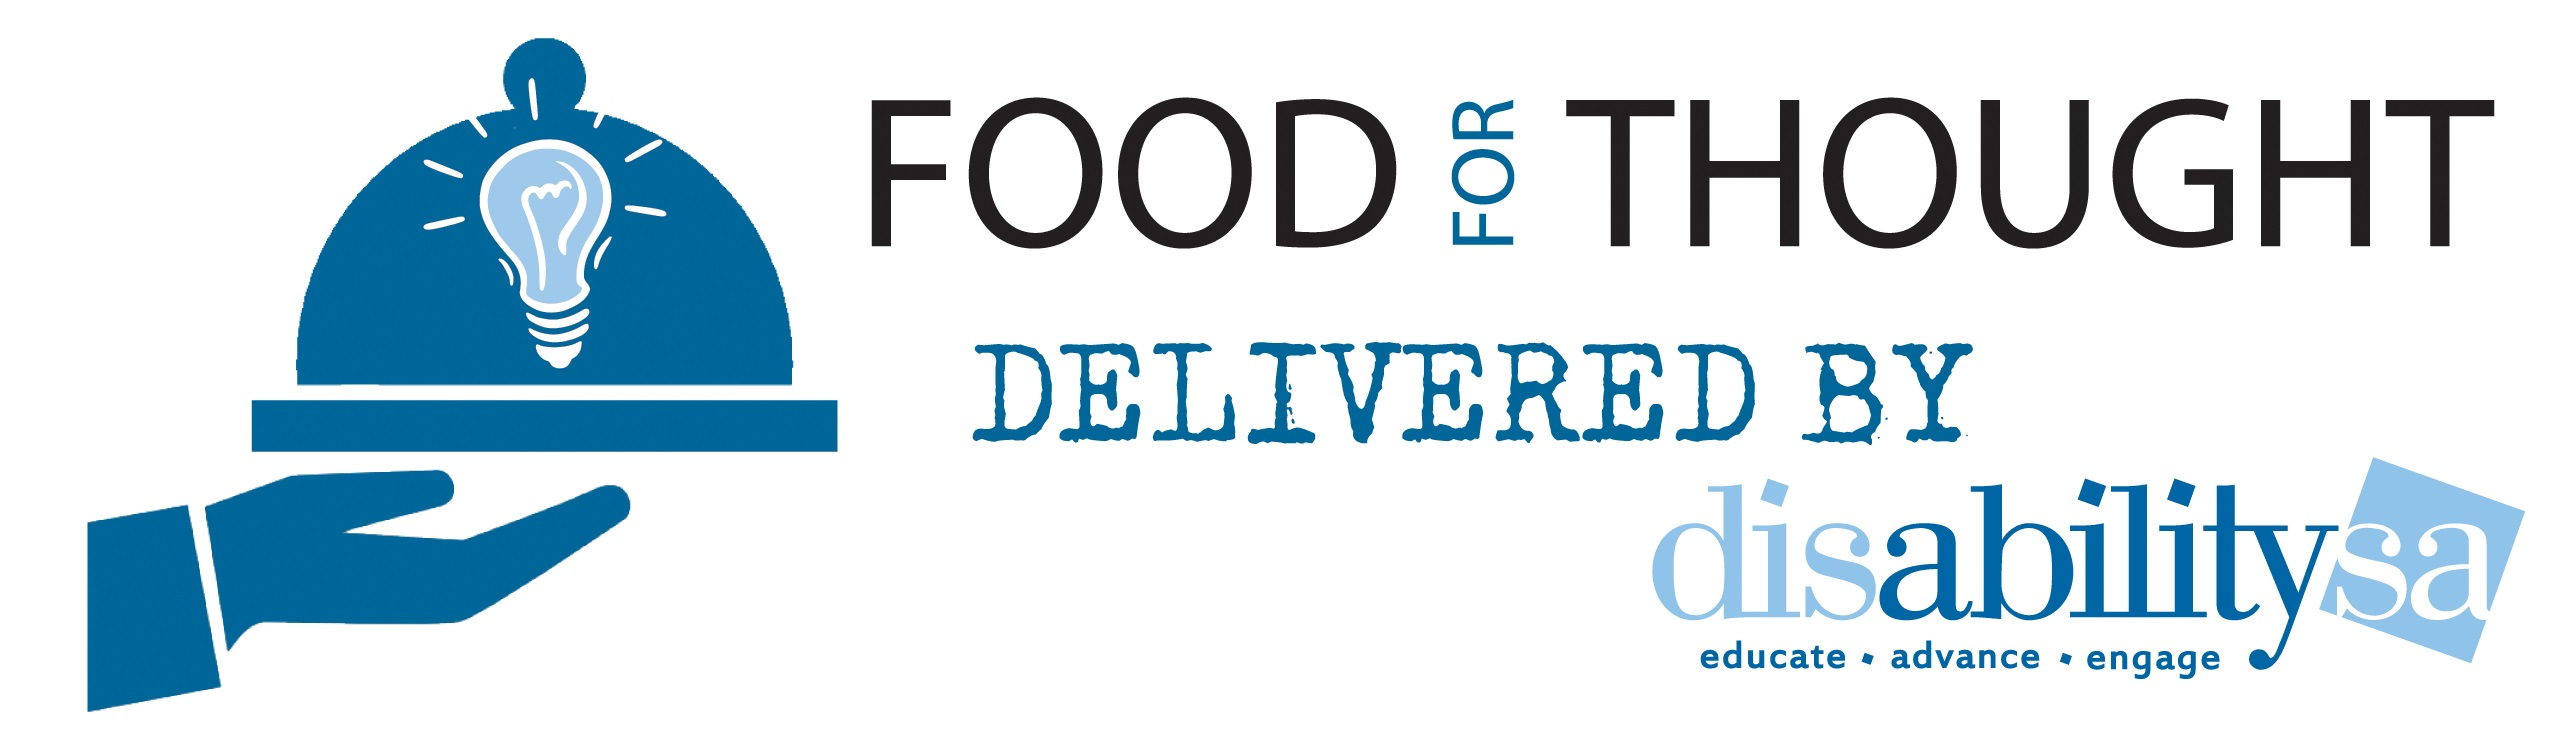 food for thought educational series logo